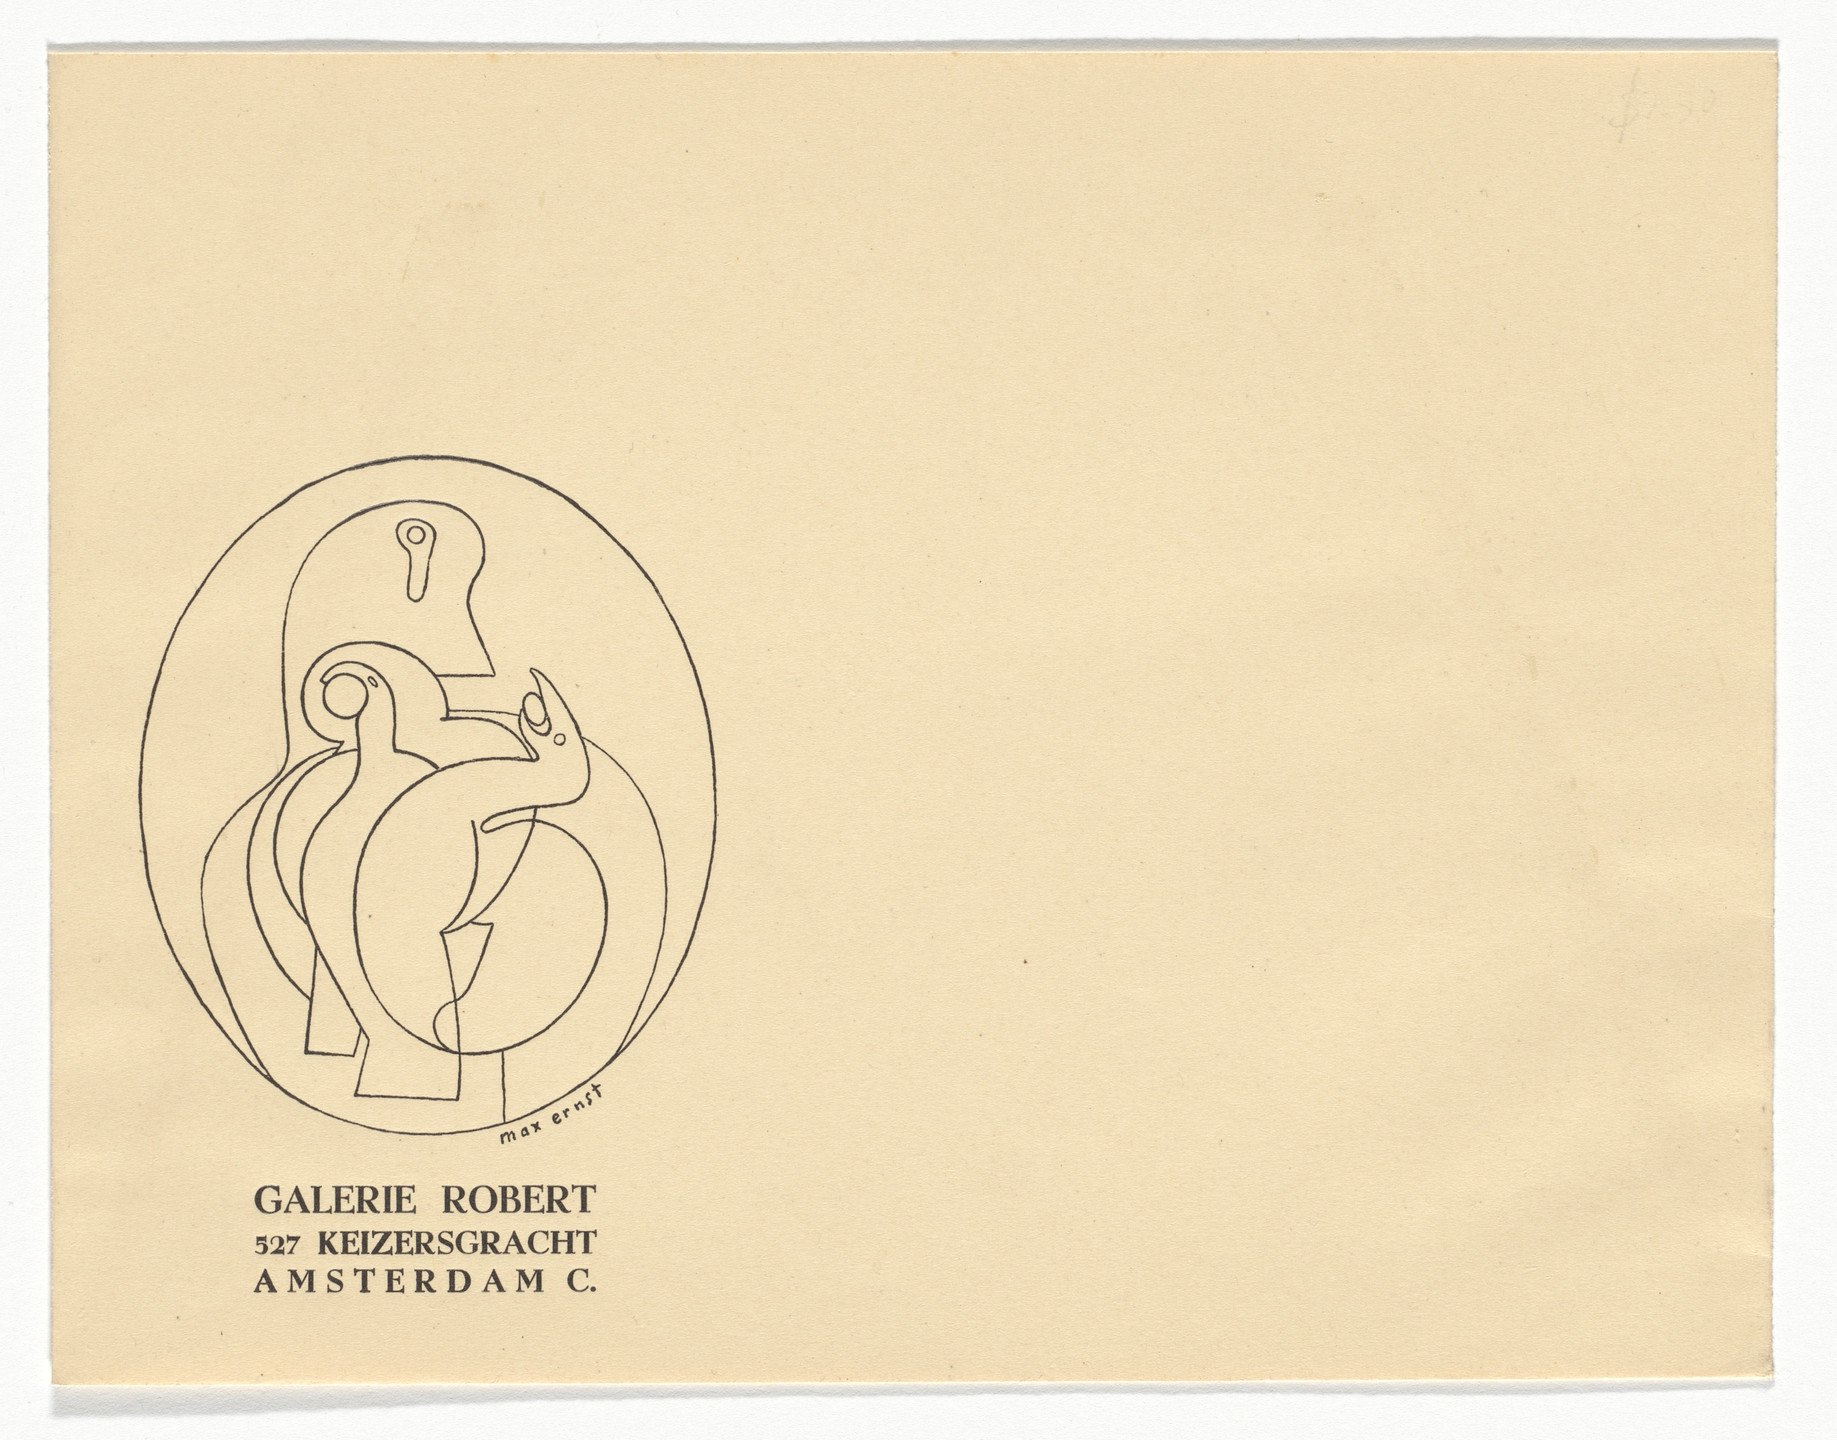 Unknown Designer, Max Ernst. Galerie Robert, Amsterdam Stationery Envelope. c.1938